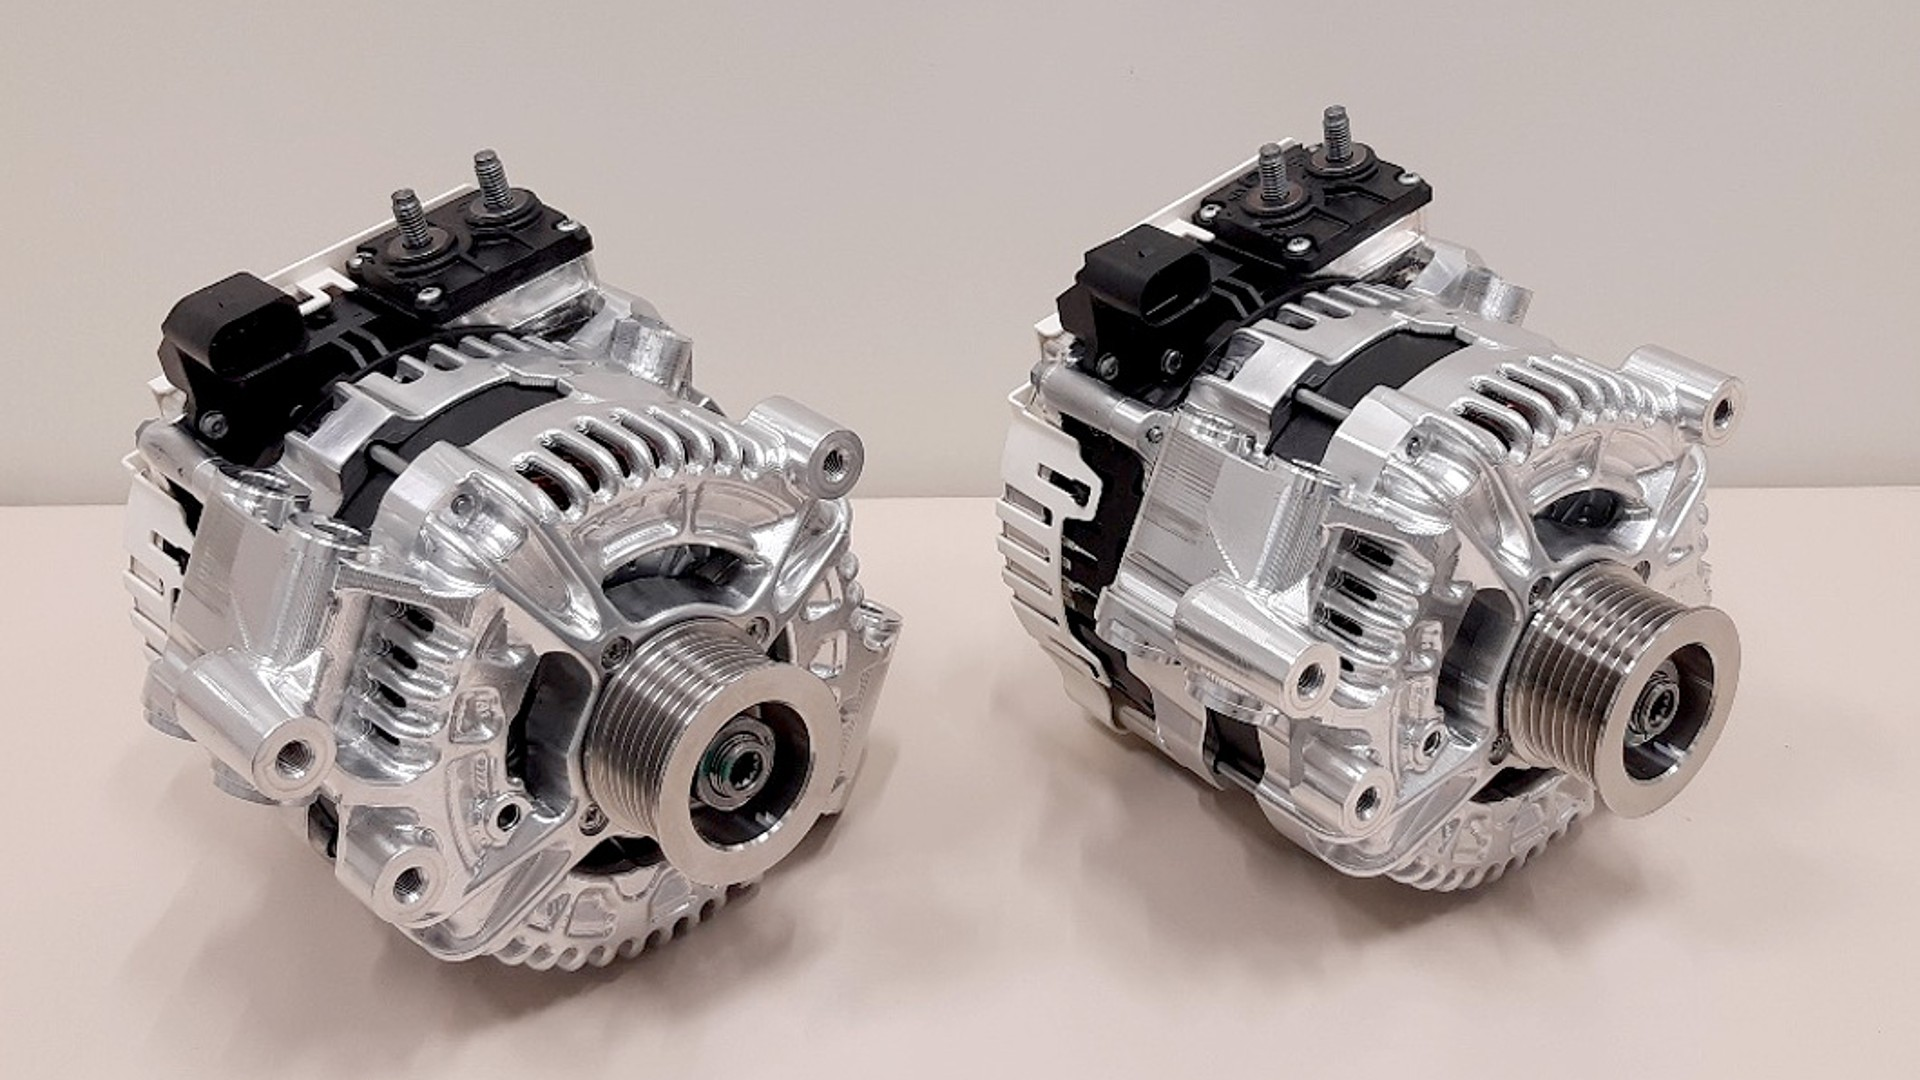 A pair of 48V Boost Recuperation Machines (BRM), Version 2.8 development samples